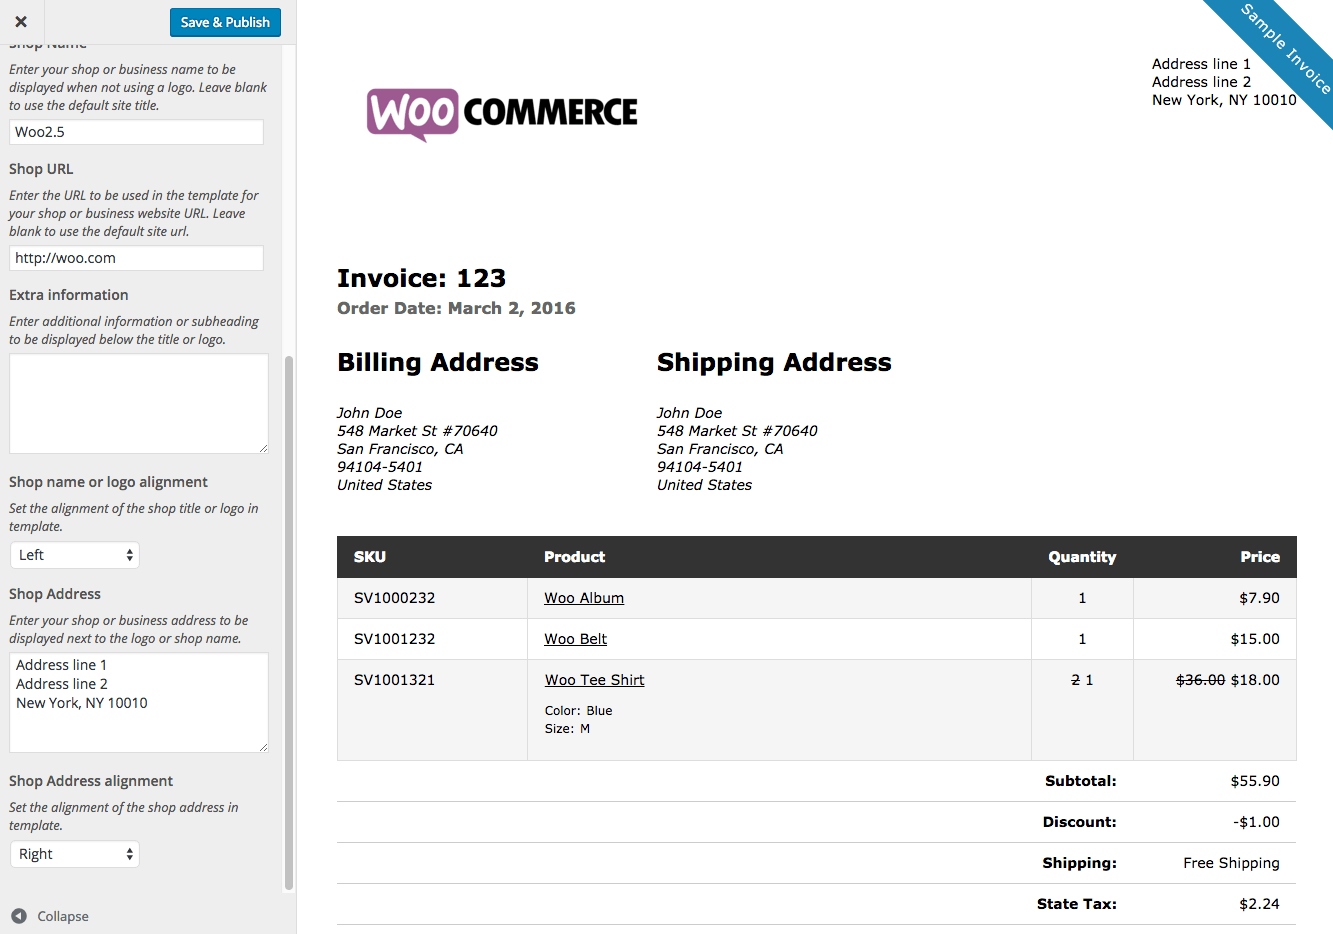 Usdgus  Pleasant Print Invoices Amp Packing Lists  Woocommerce With Outstanding Woocommerce Print Invoices  Packing Lists Customizer With Alluring Amazon Invoice Address Also Invoice To Go Review In Addition Invoice Duplicate Book And Commercial Invoice Template For Word As Well As Invoice Forms Templates Free Additionally Mexico Commercial Invoice From Woocommercecom With Usdgus  Outstanding Print Invoices Amp Packing Lists  Woocommerce With Alluring Woocommerce Print Invoices  Packing Lists Customizer And Pleasant Amazon Invoice Address Also Invoice To Go Review In Addition Invoice Duplicate Book From Woocommercecom